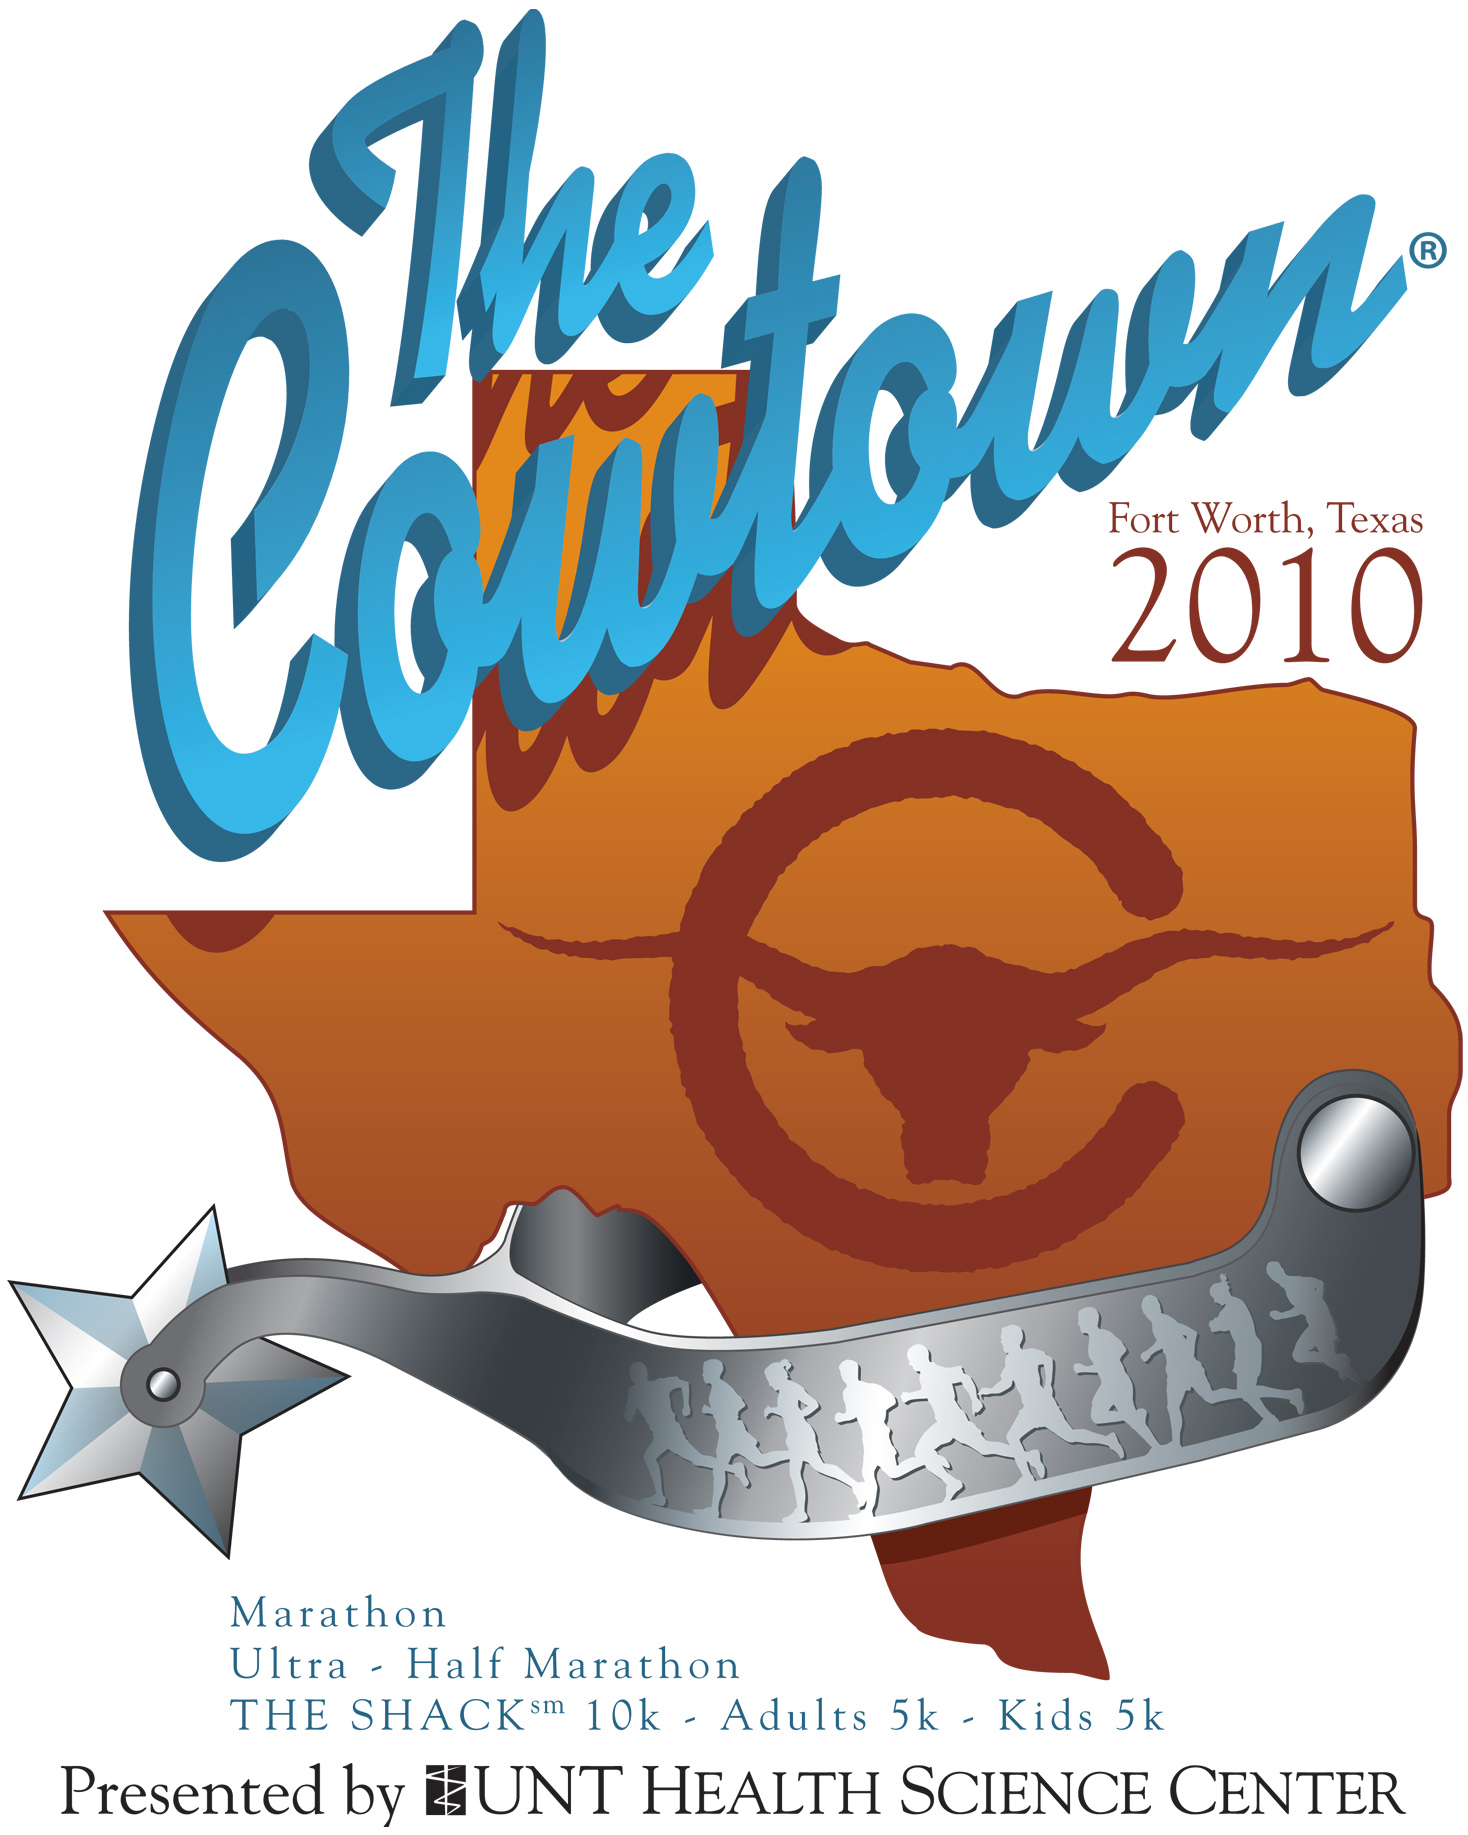 Cowtown Ultra